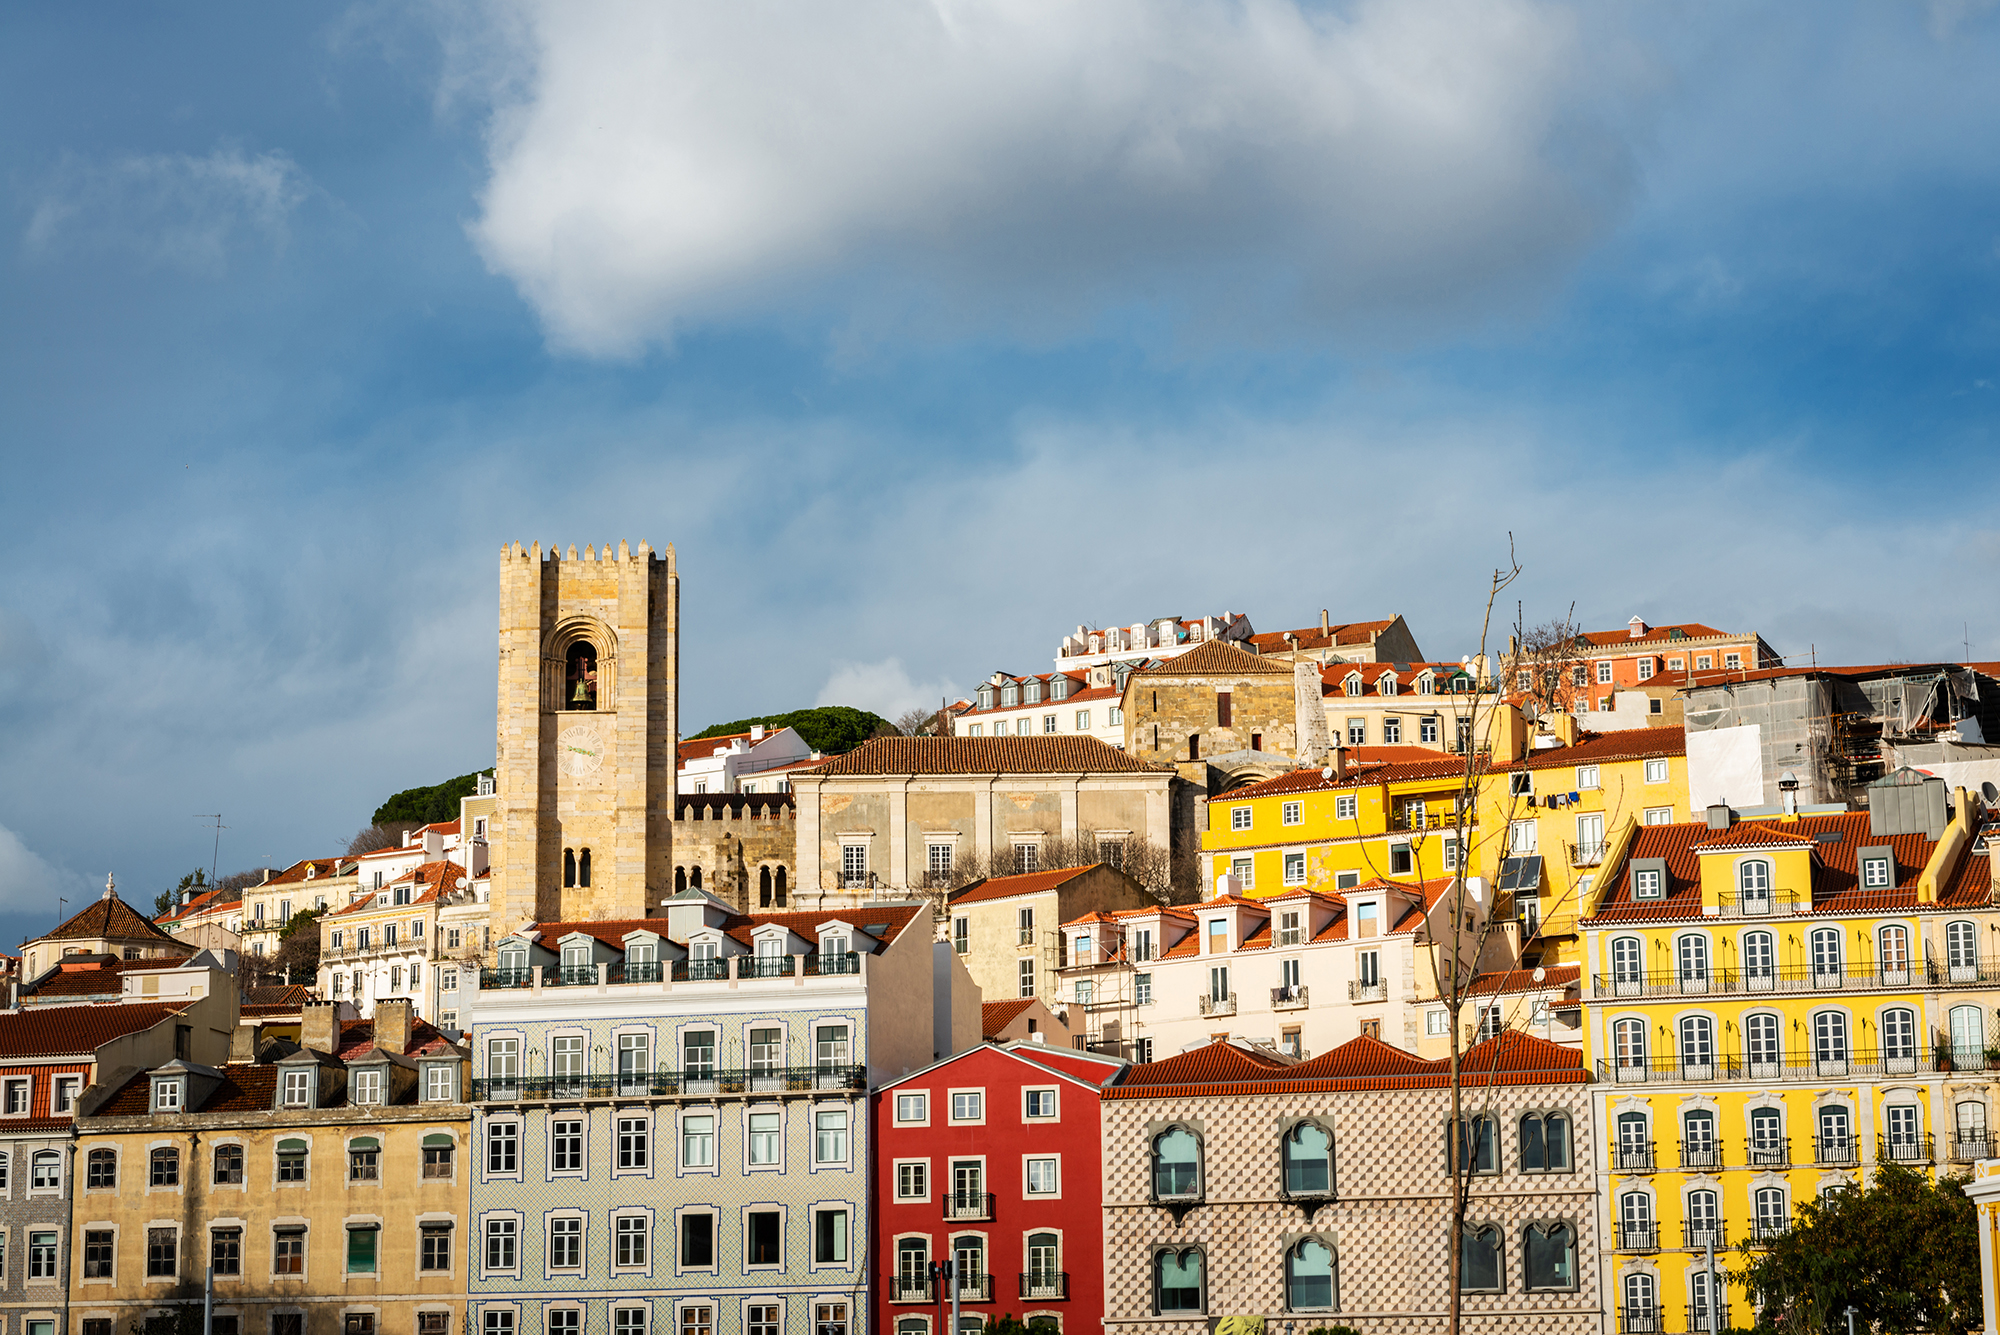 Skyline with the towers of the cathedral and colourful houses of the Alfama district